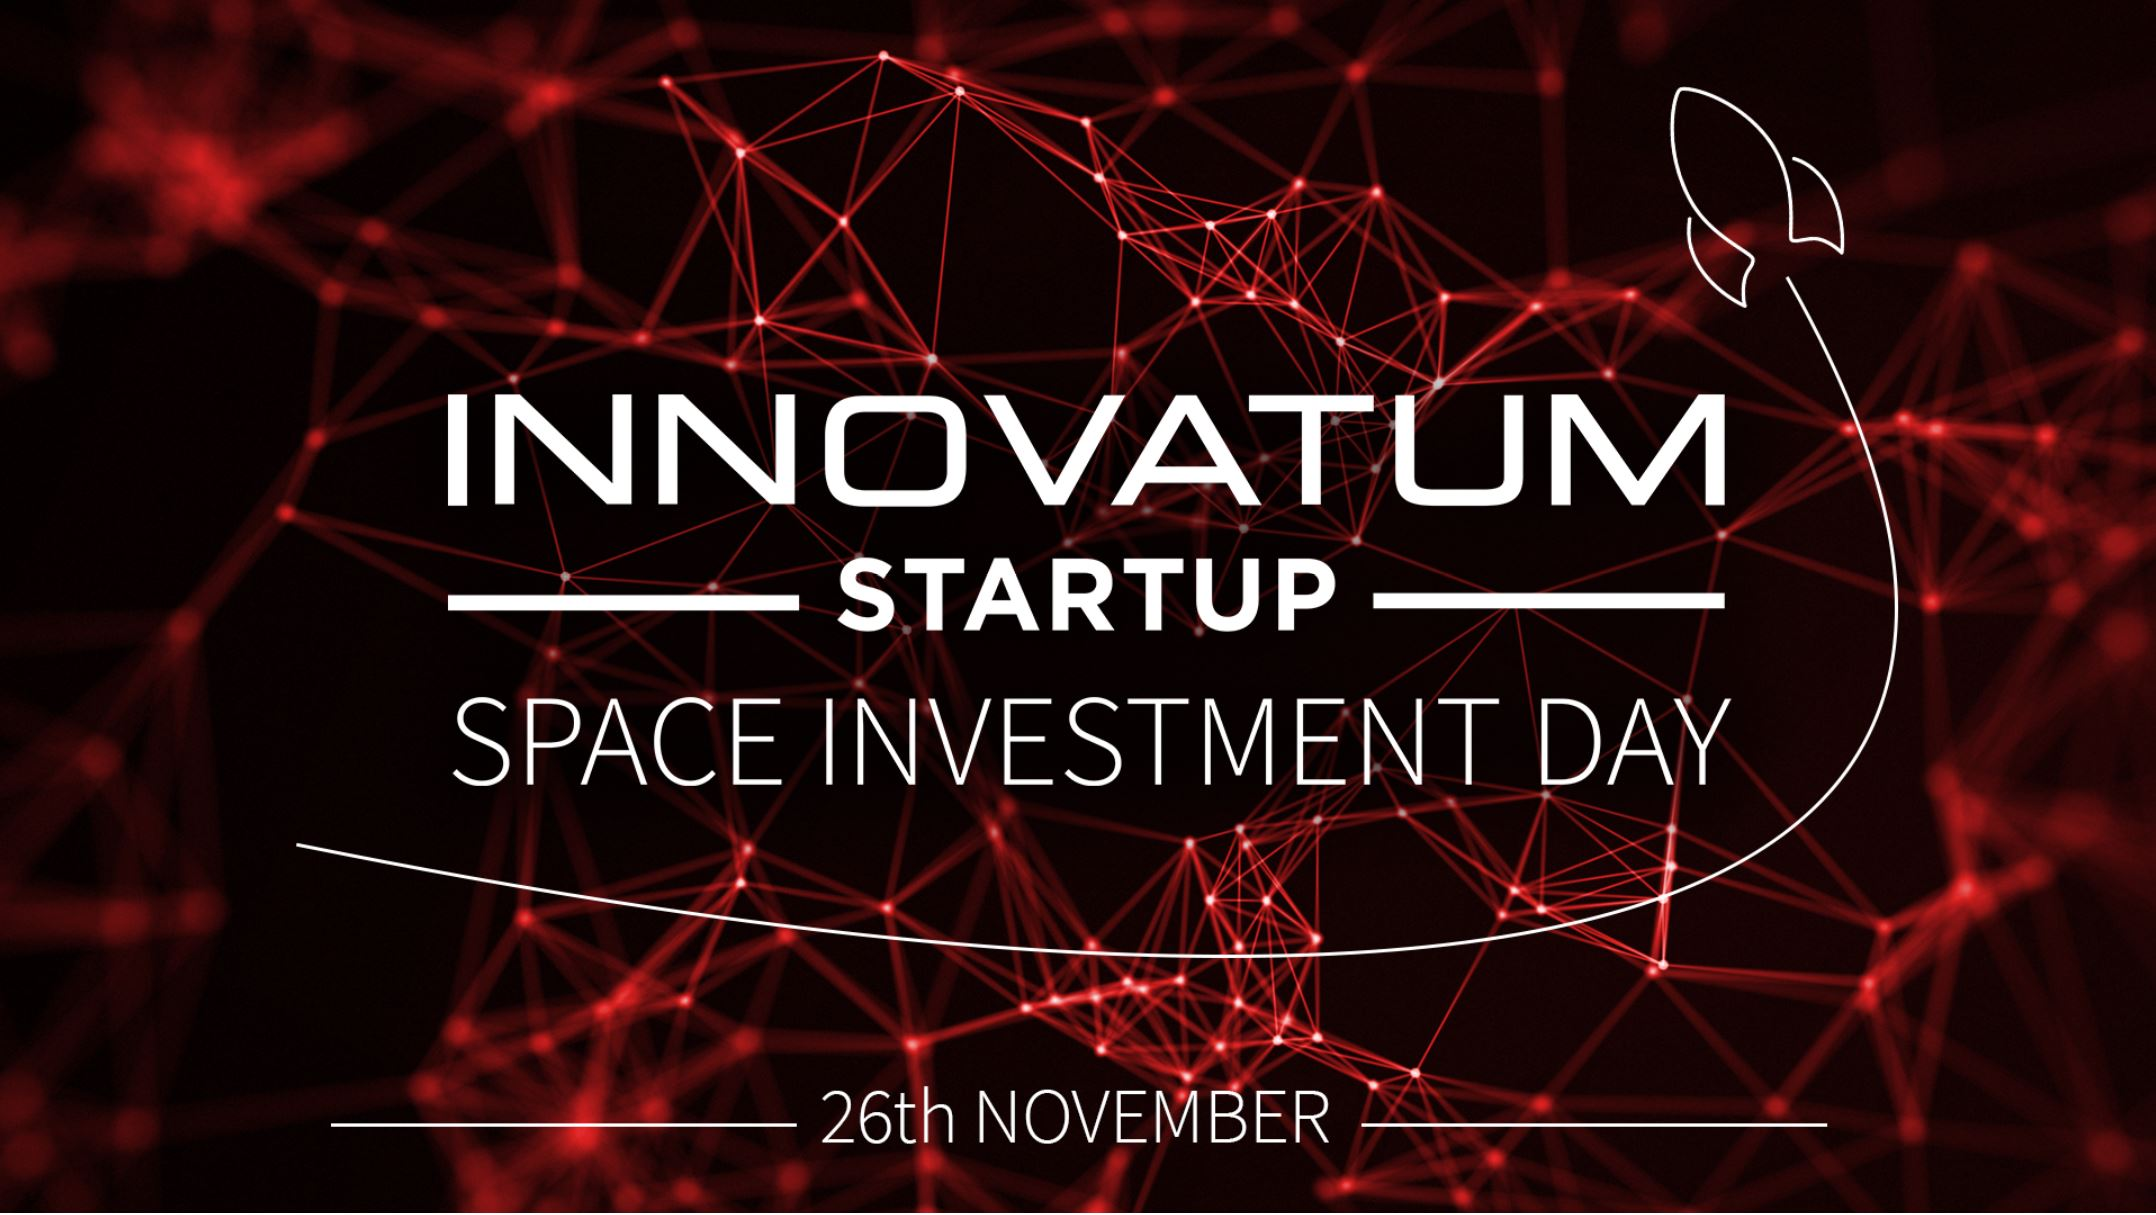 Space Investment day